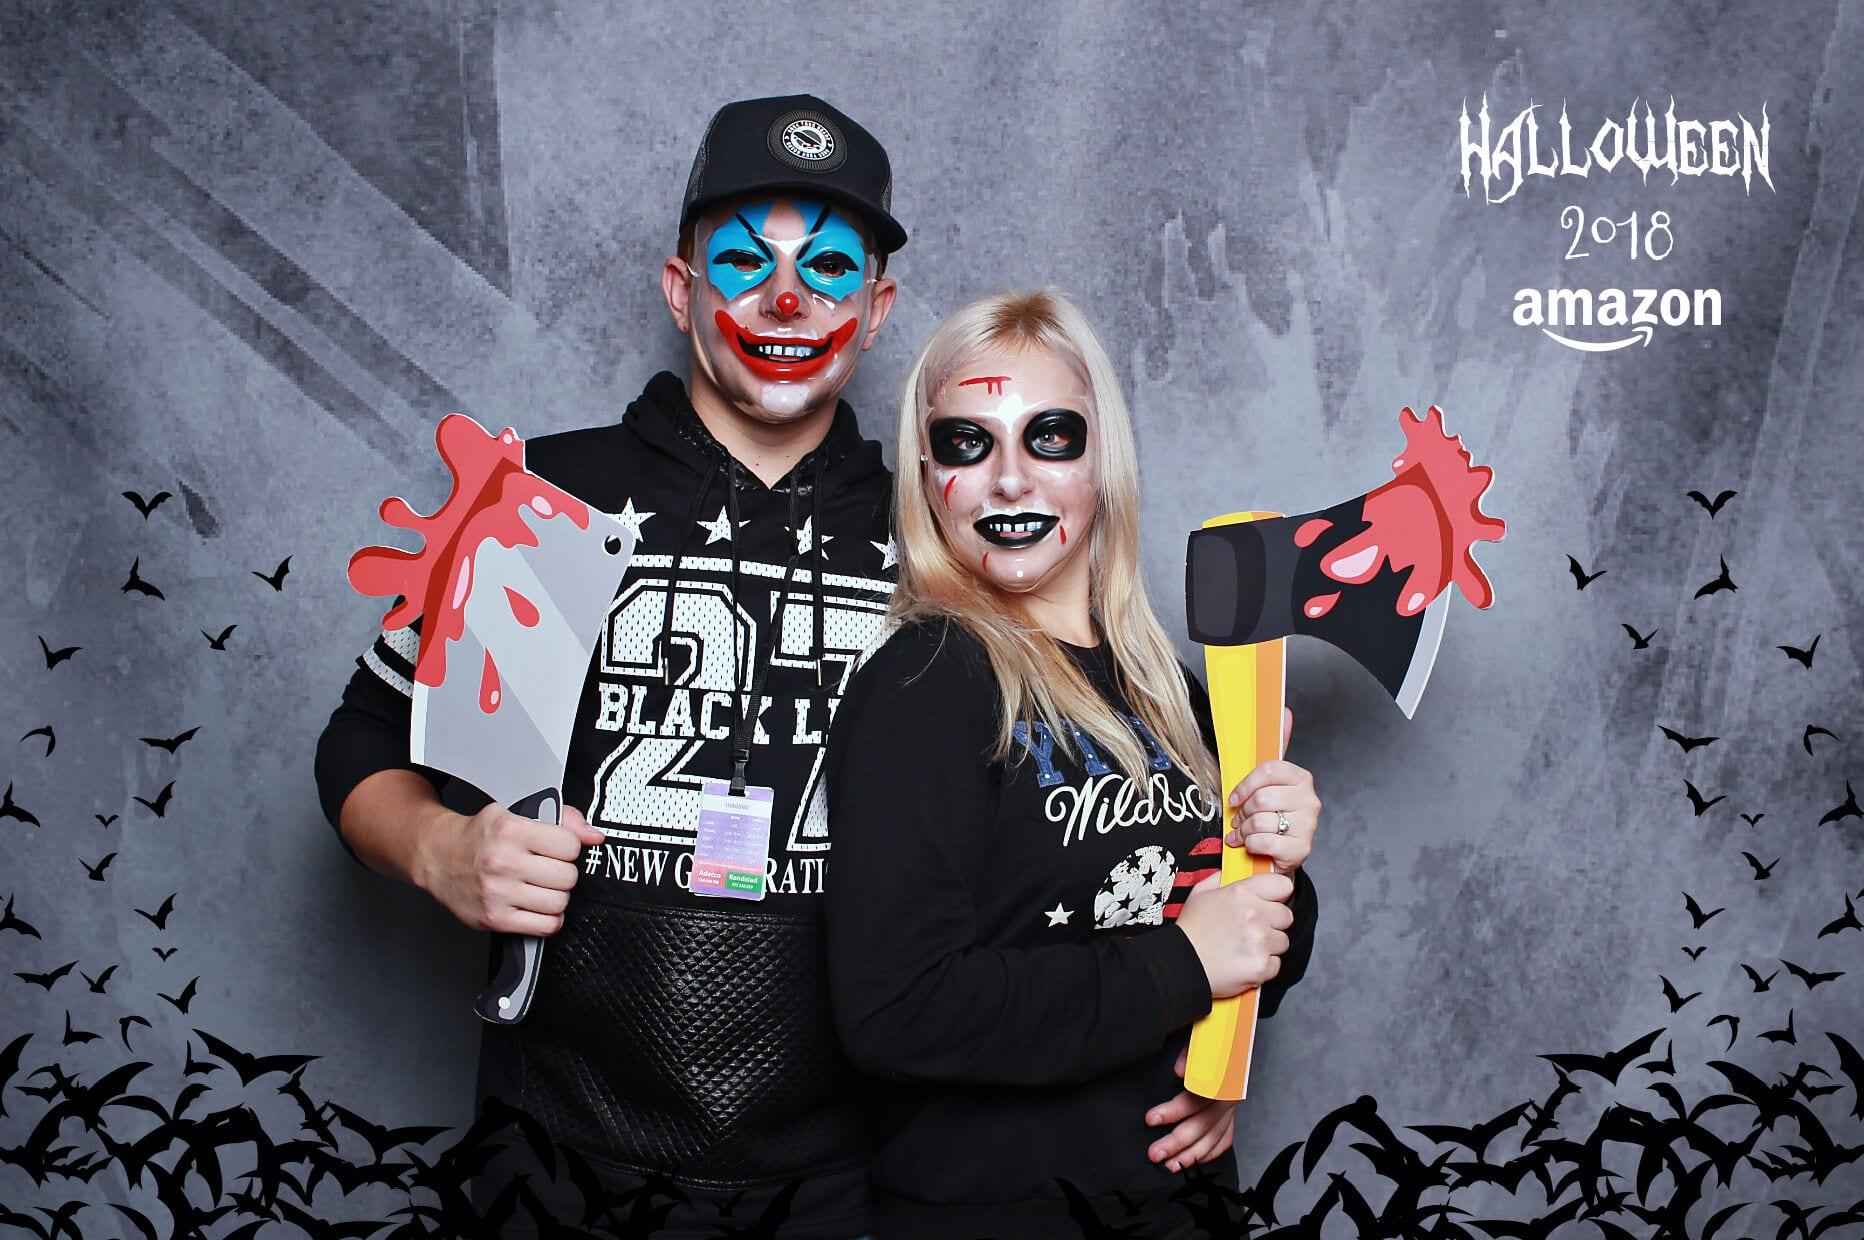 fotokoutek-amazon-halloween-2-31-10-2018-515553